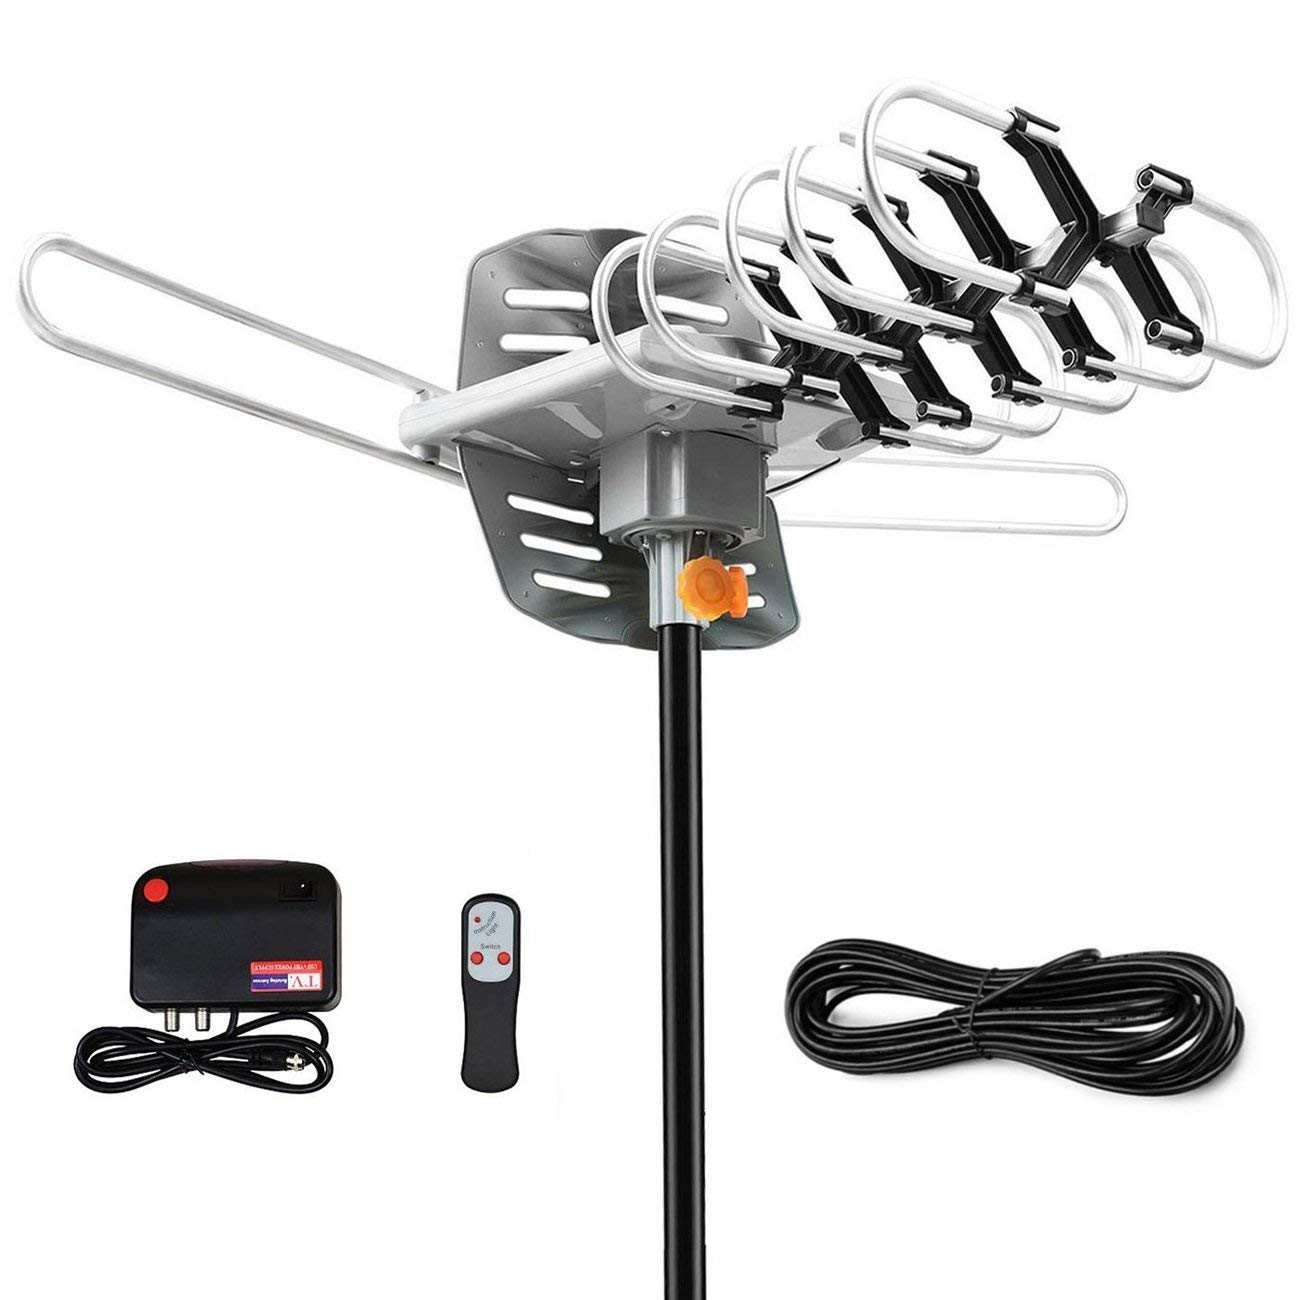 TV Antenna -Outdoor Amplified HDTV Antenna 150 Mile Range Motorized 360 Degree Rotation,Pacoso Digital TV Antenna for 2 TVs Support - UHF/VHF/FM Signal Wireless Remote Control - 33FT Coax Cable